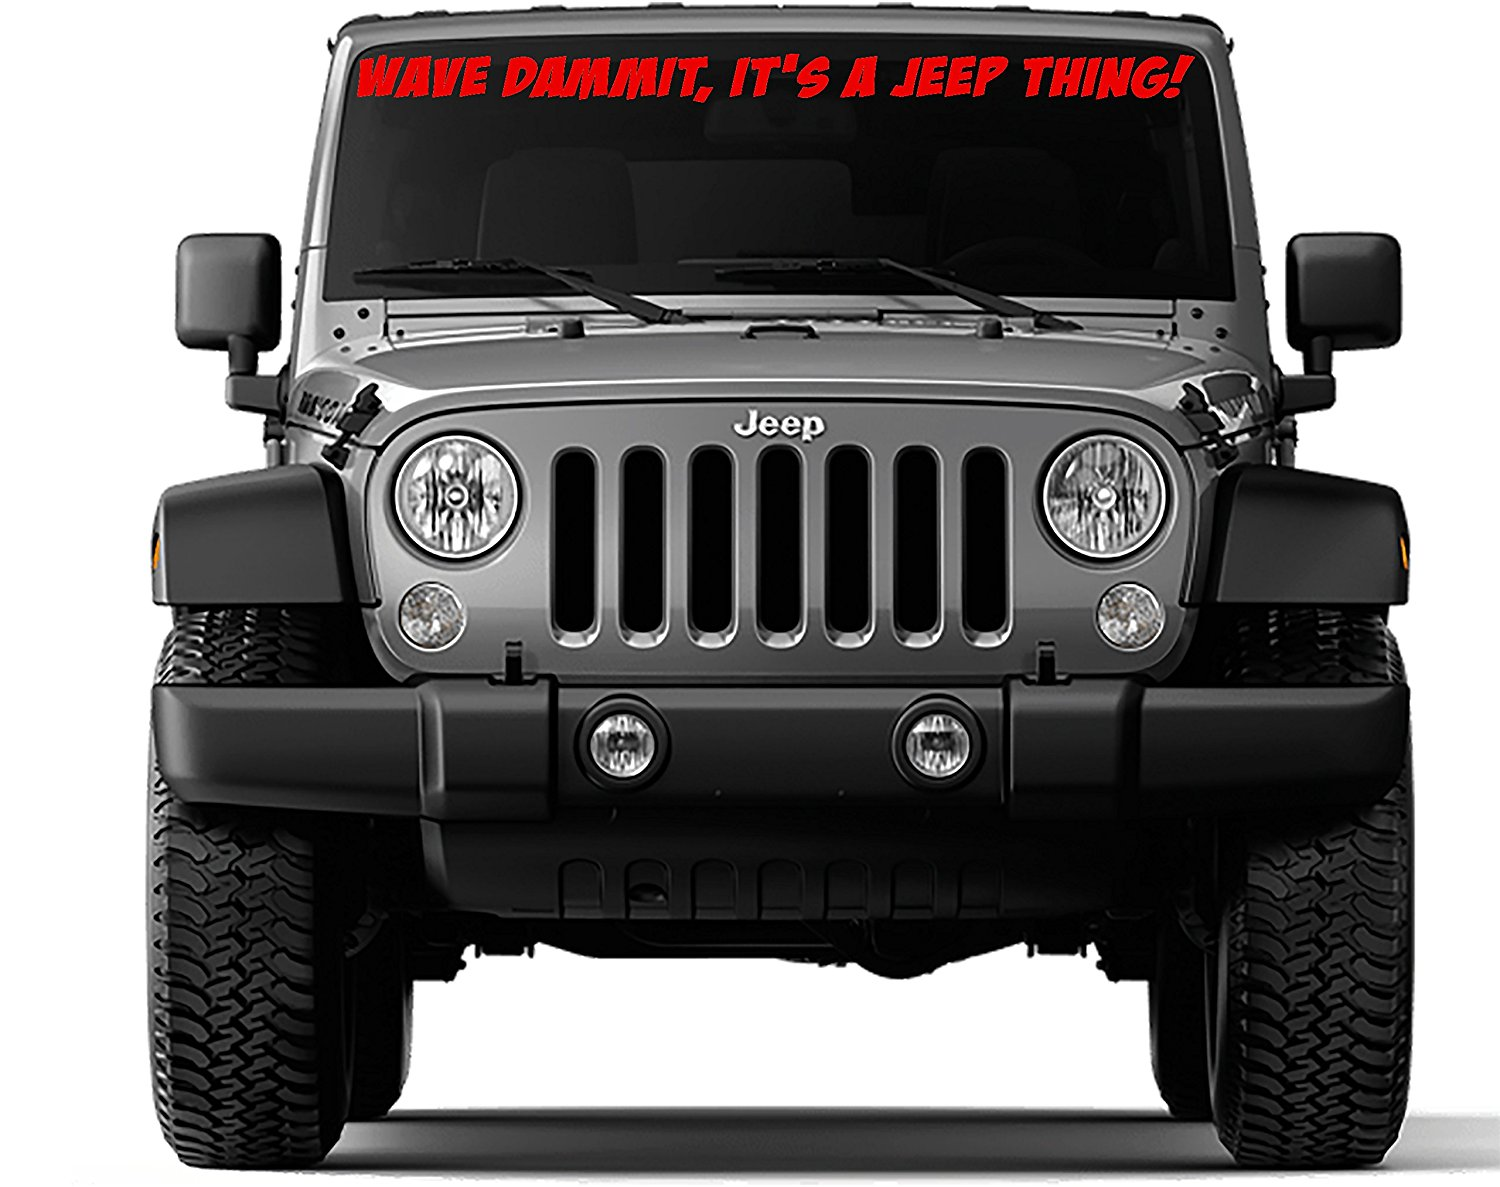 hight resolution of get quotations front windshield sticker decal wave dammit it s a jeep thing for jeep wrangler tj 40